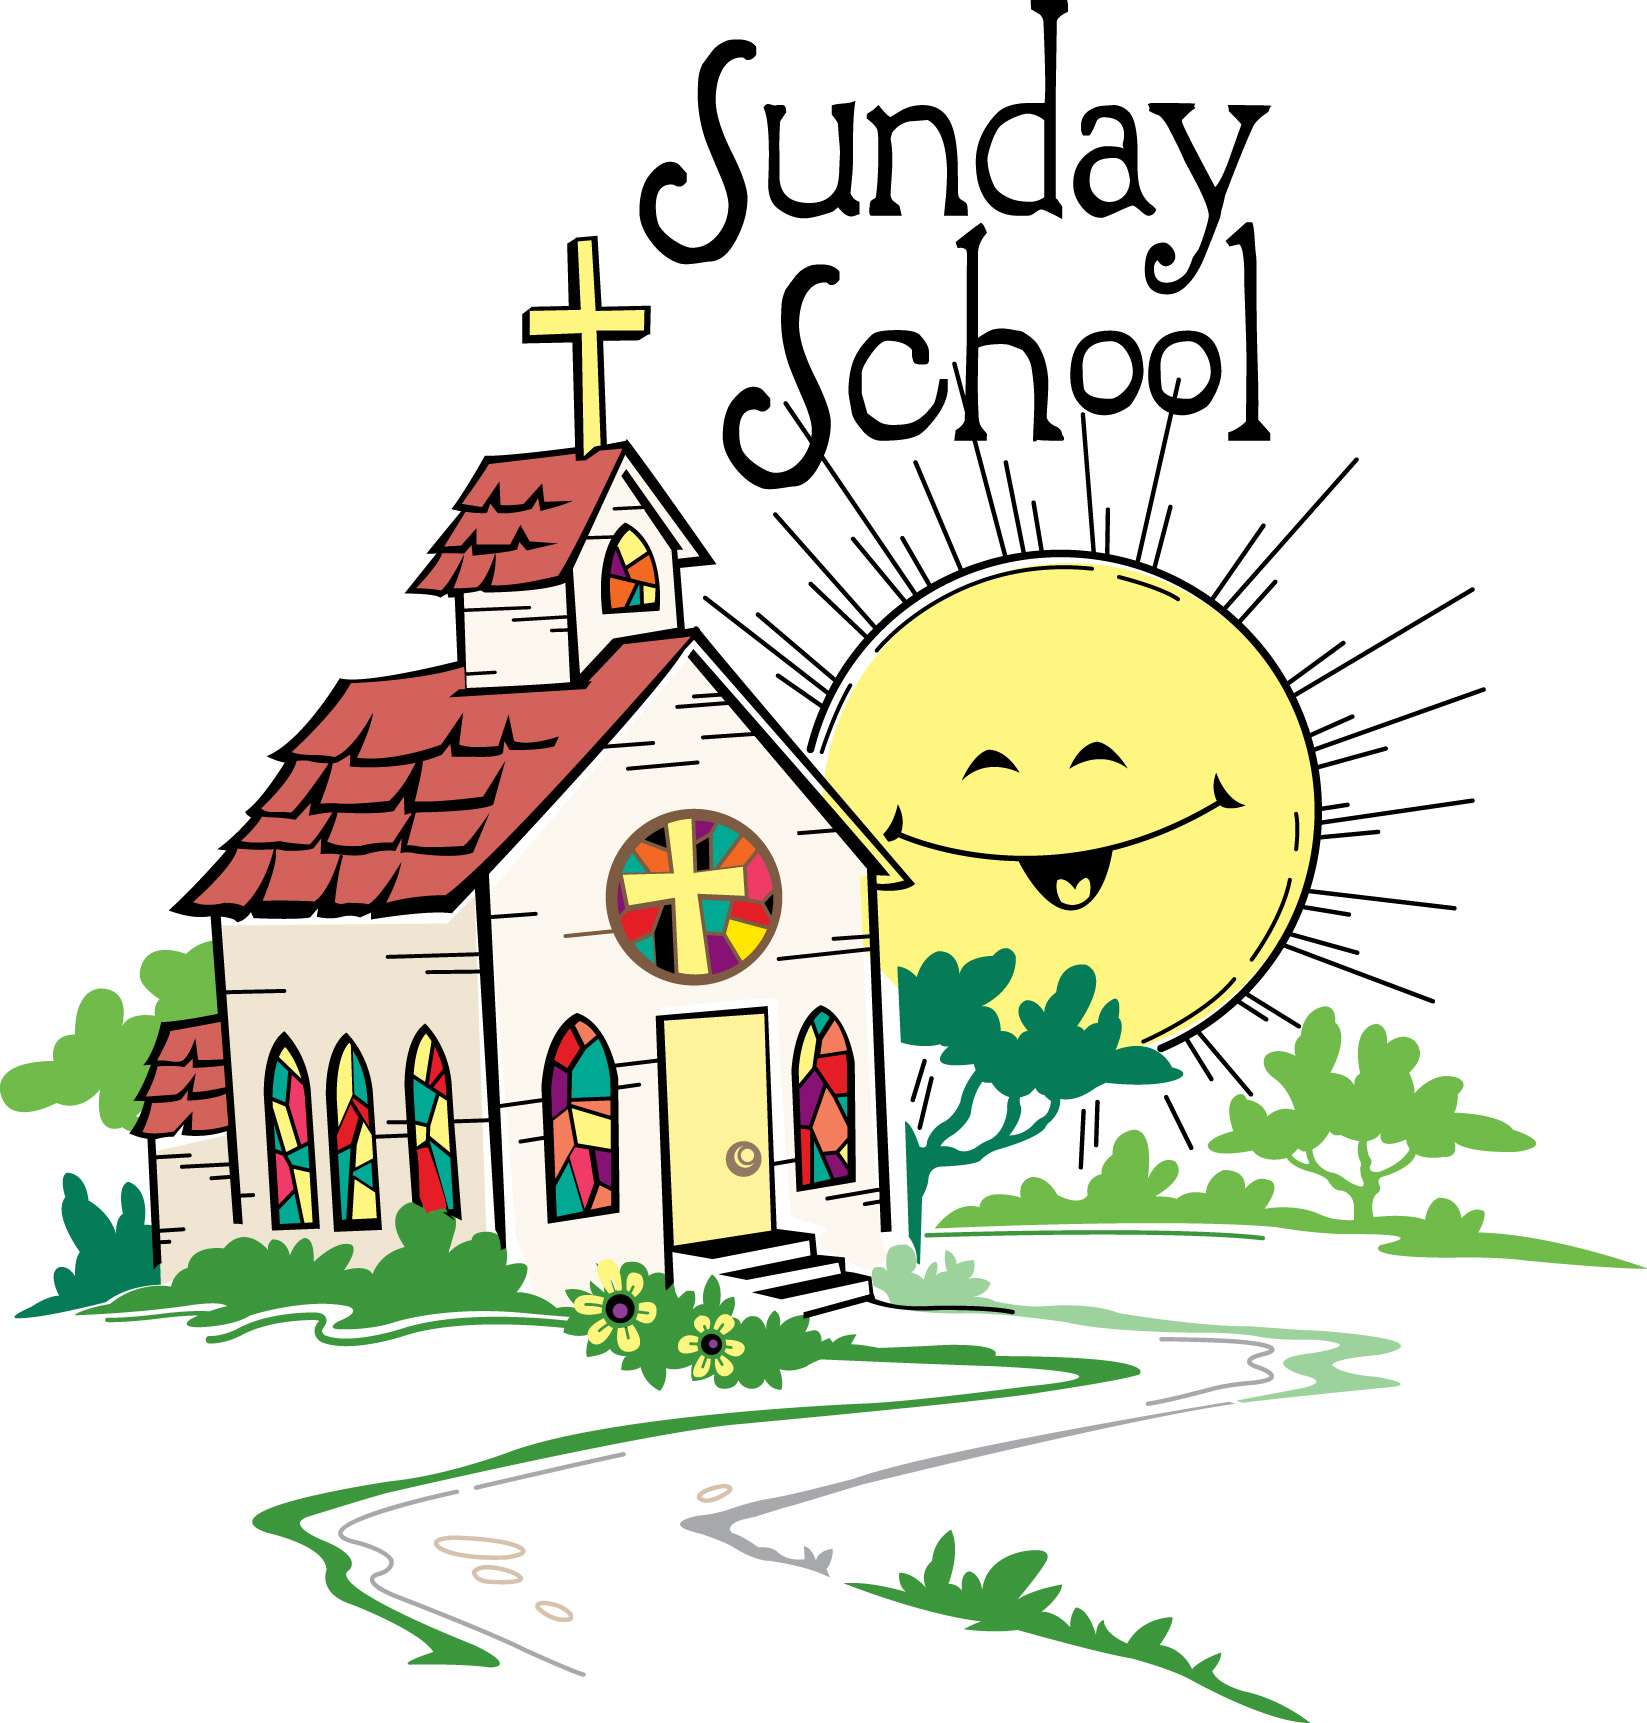 Sunday School Clipart Church.